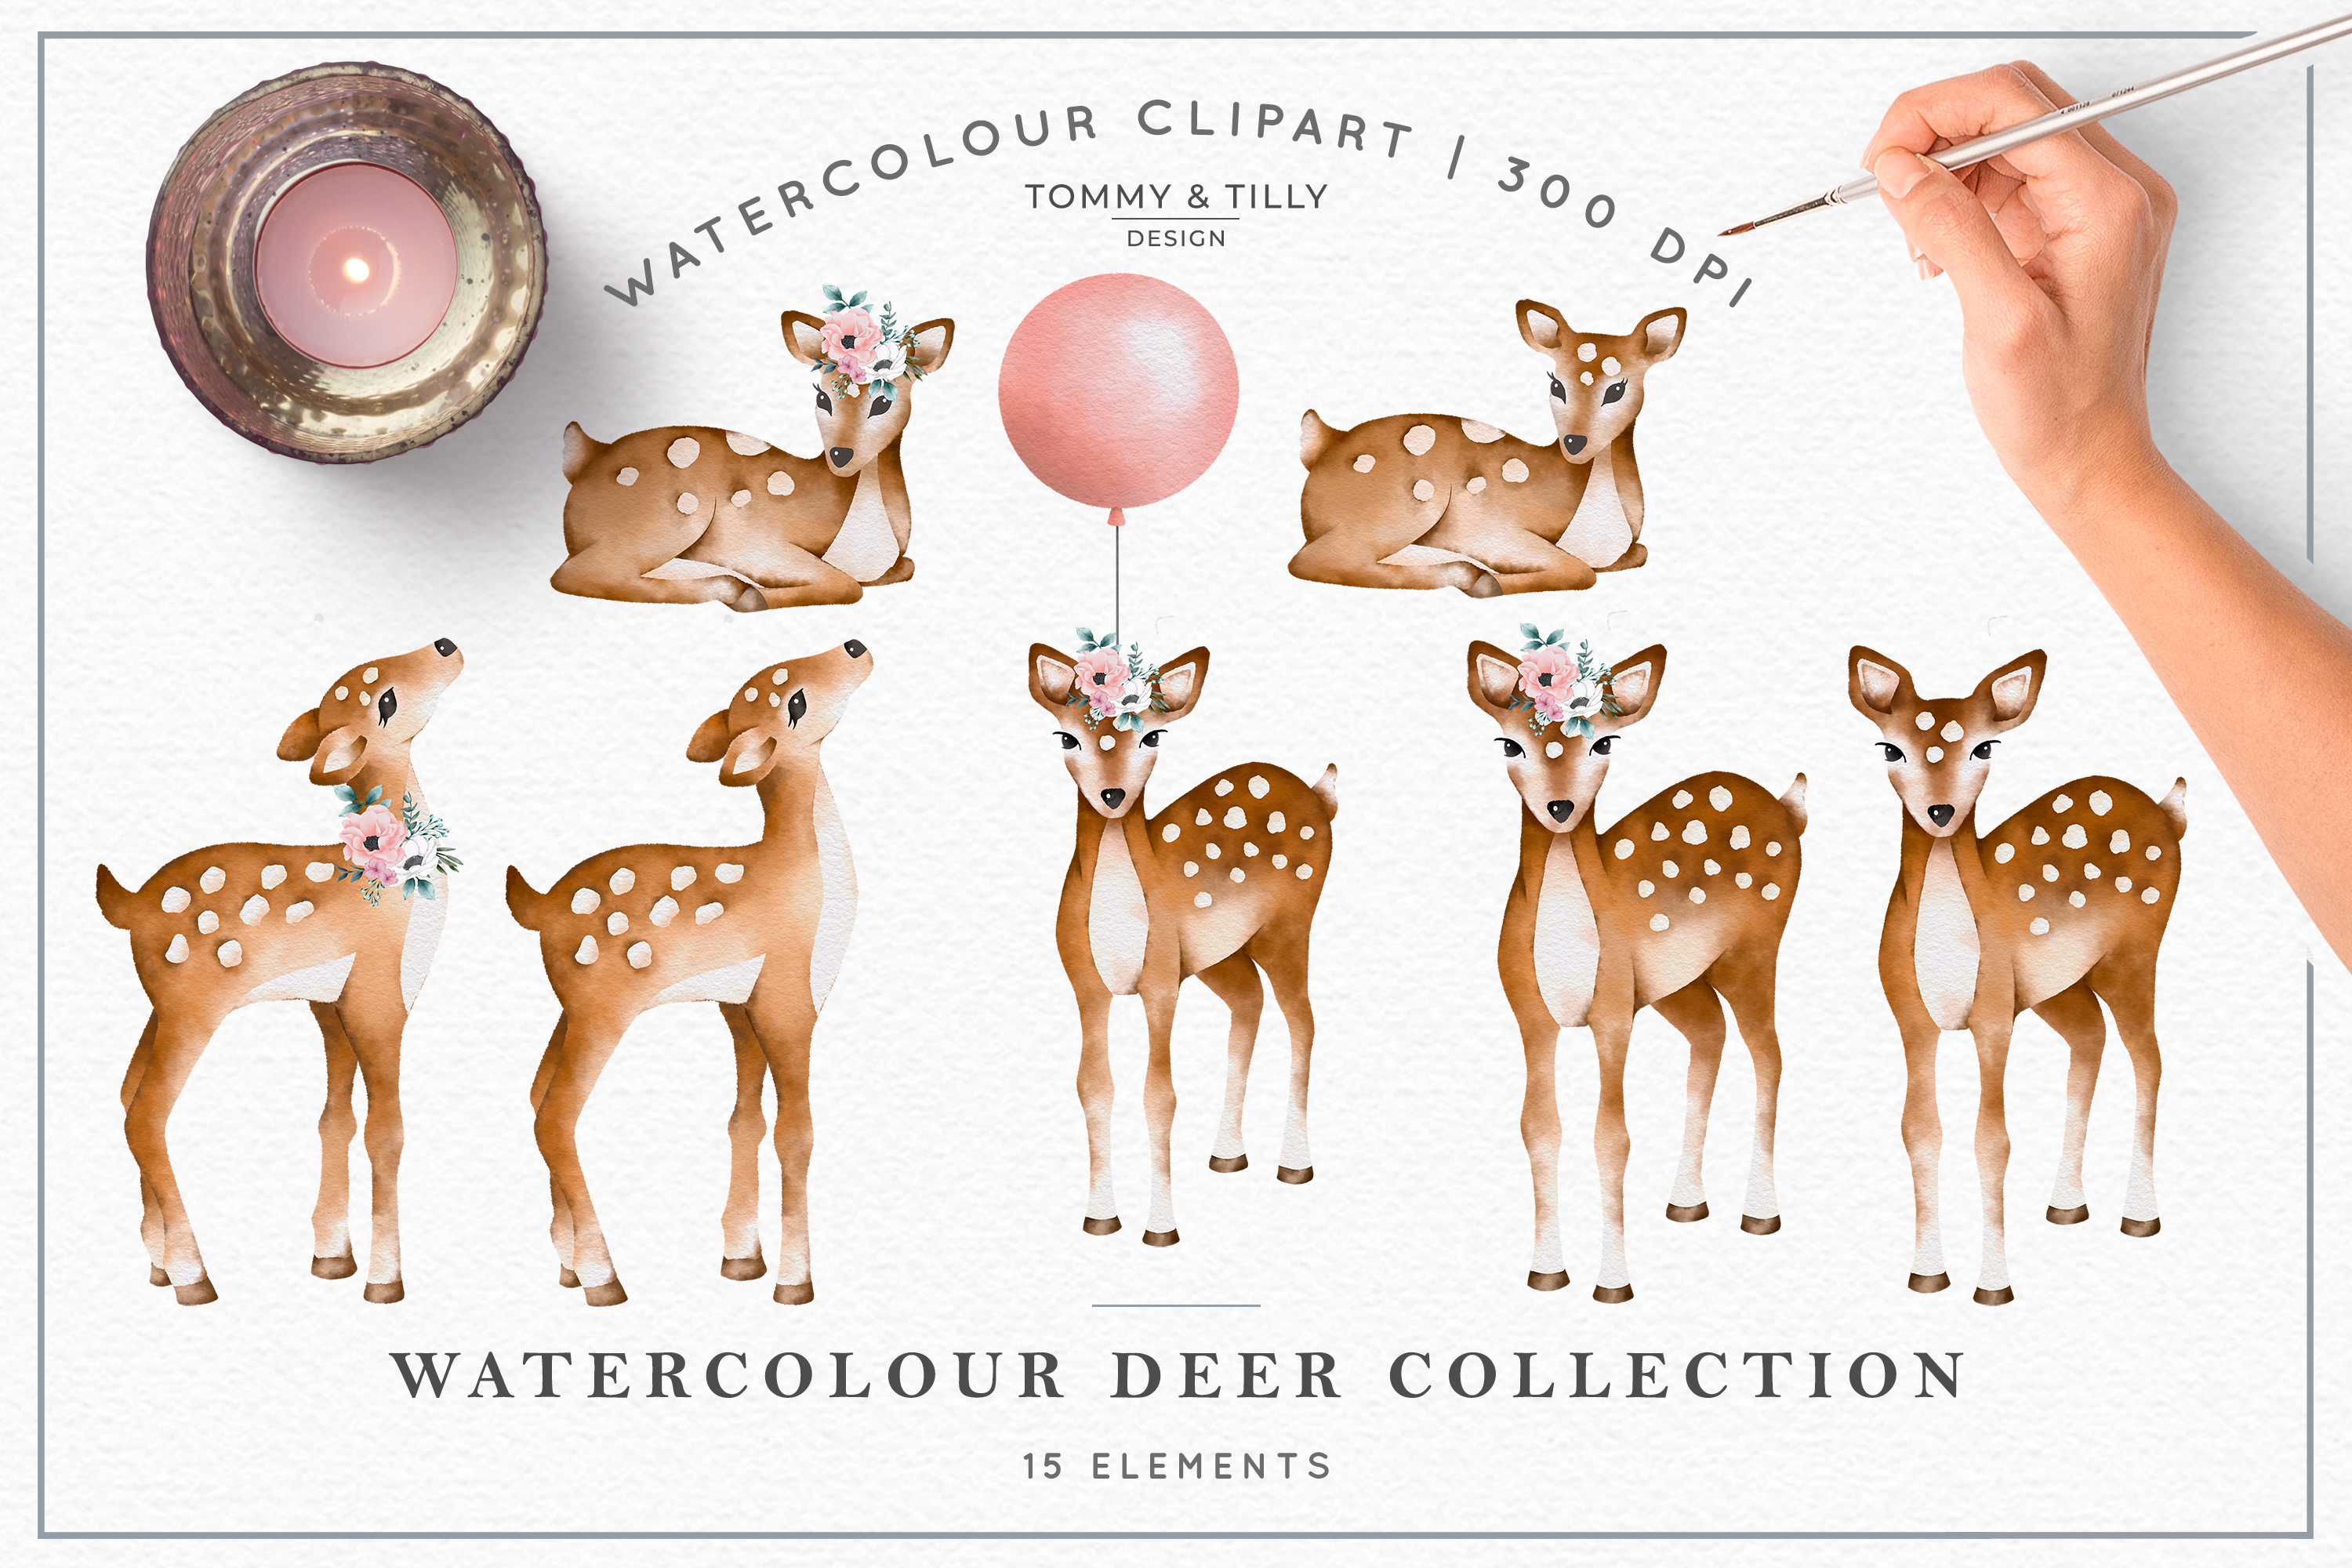 Watercolour Deer Collection - Wedding Baby Flower Clipart PN example image 2